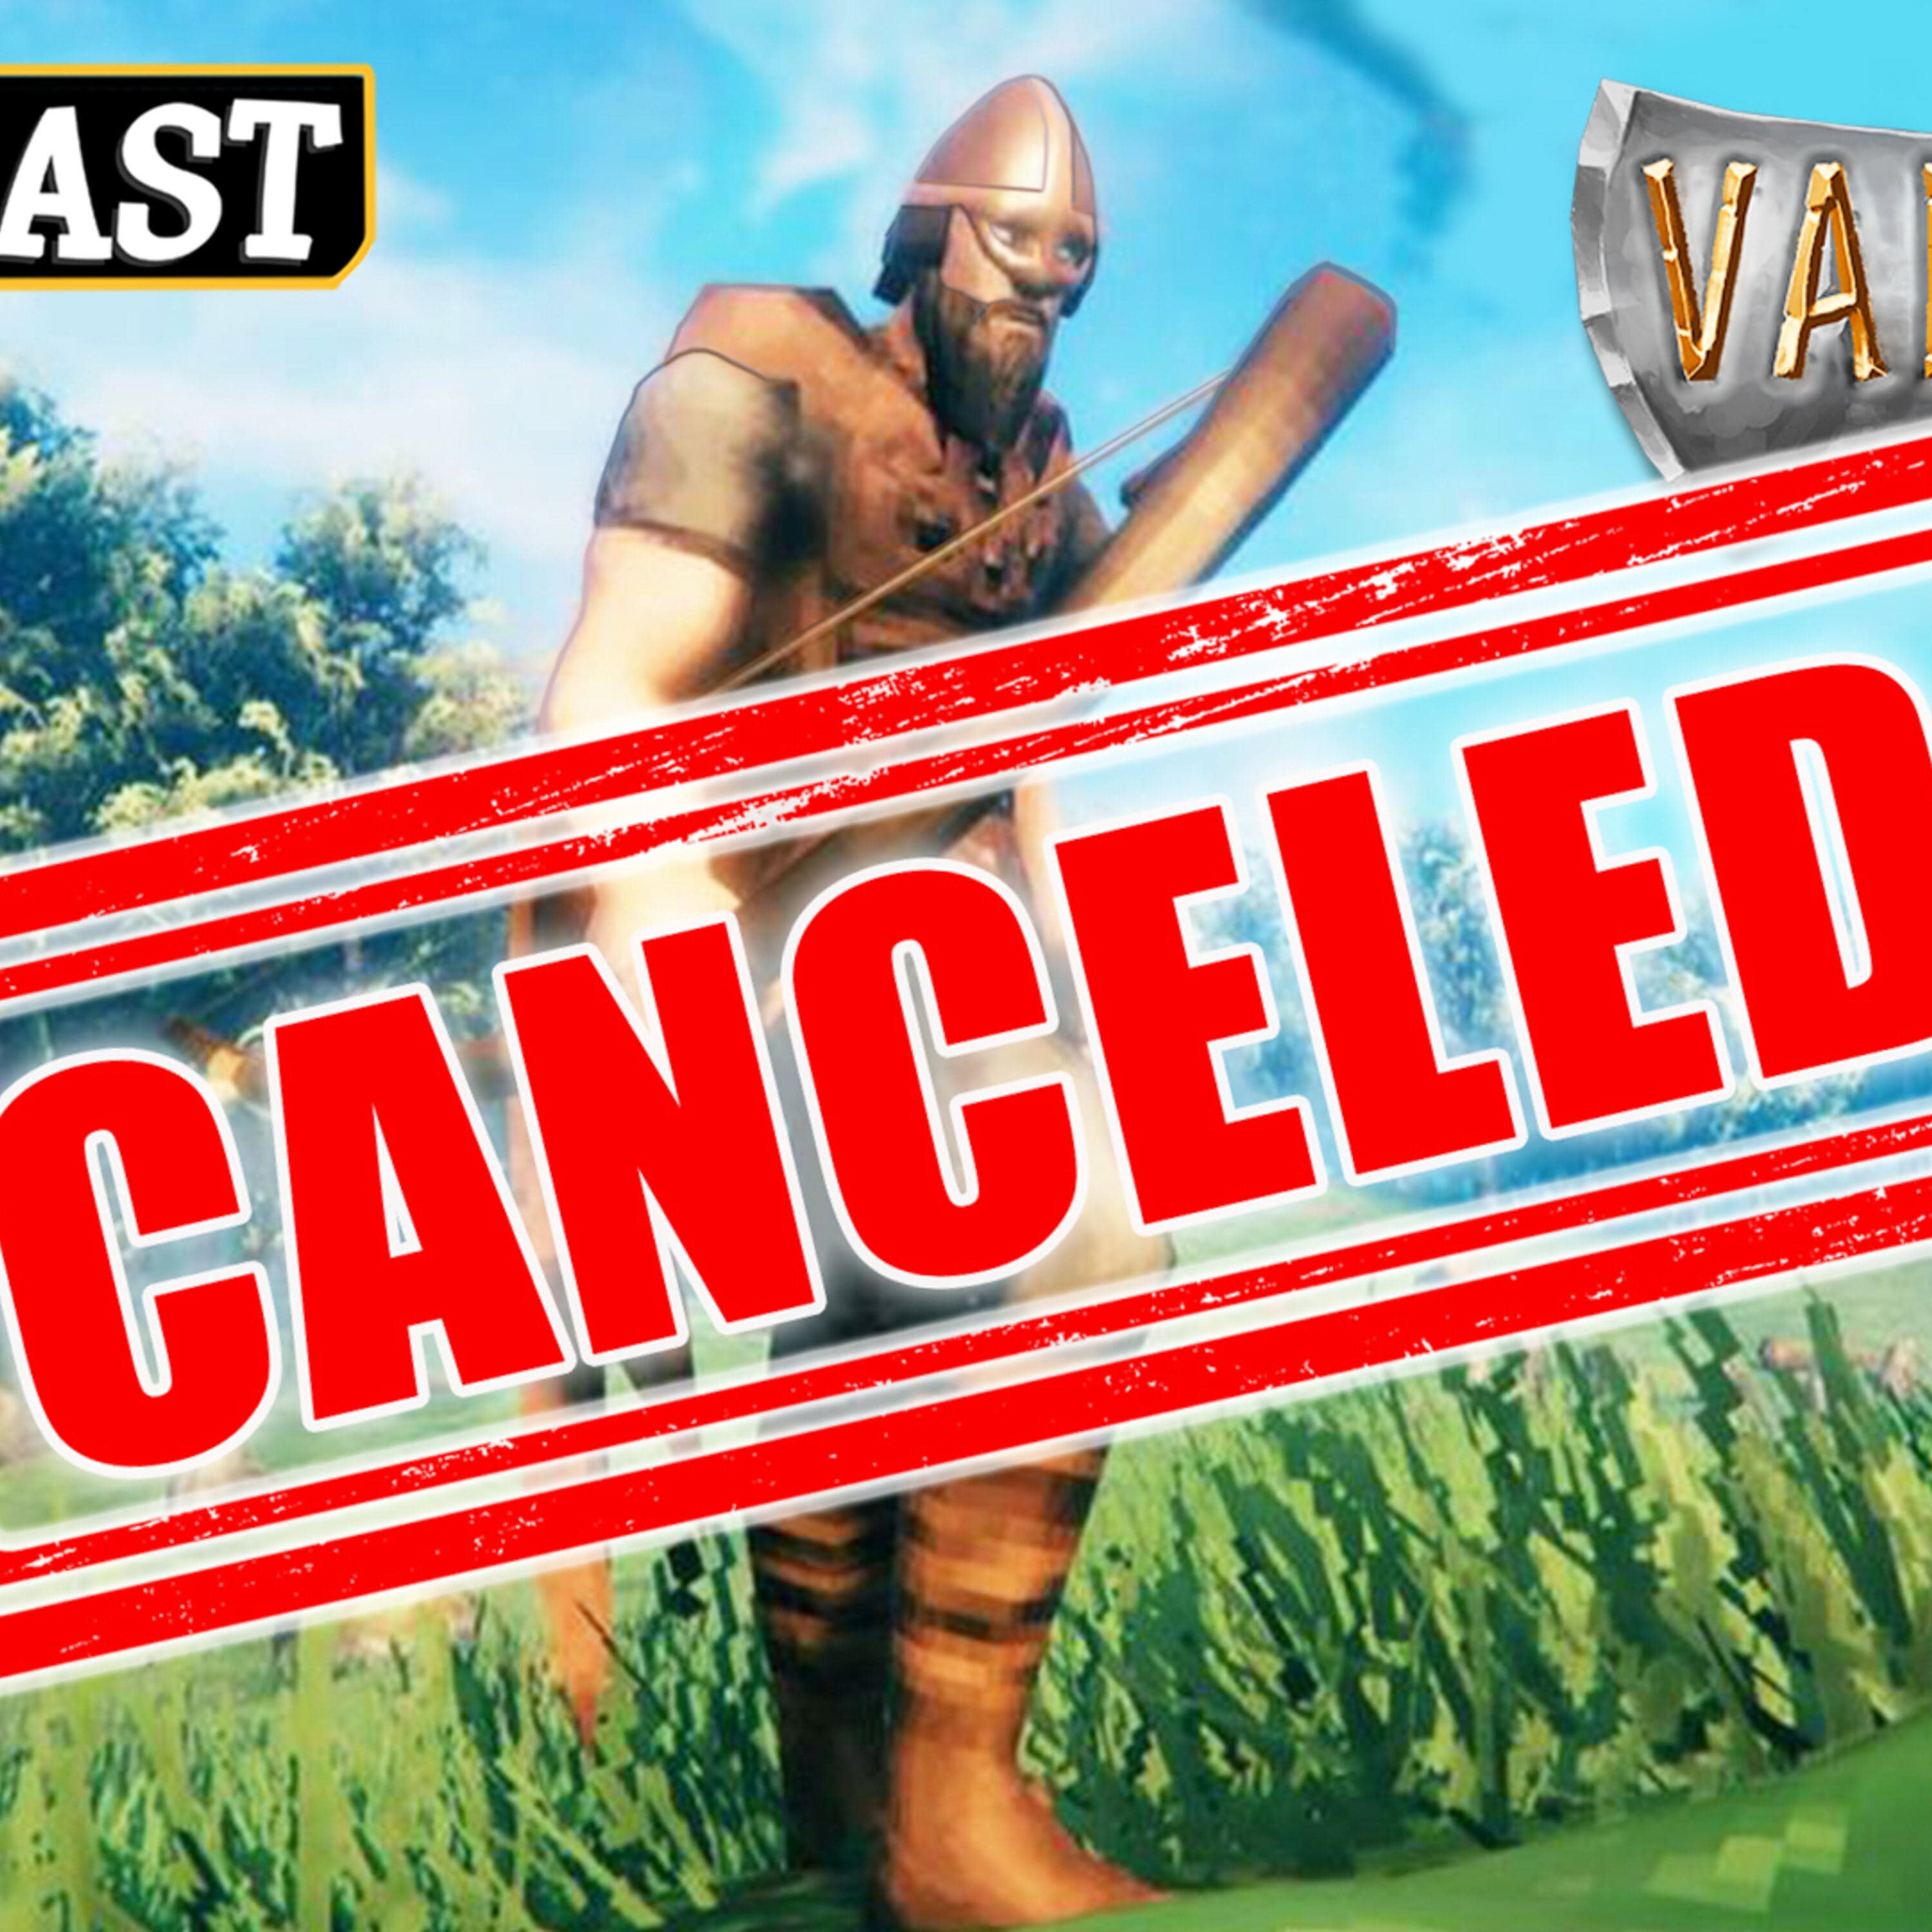 Valheim Canceled!?! What was the REAL Problem?